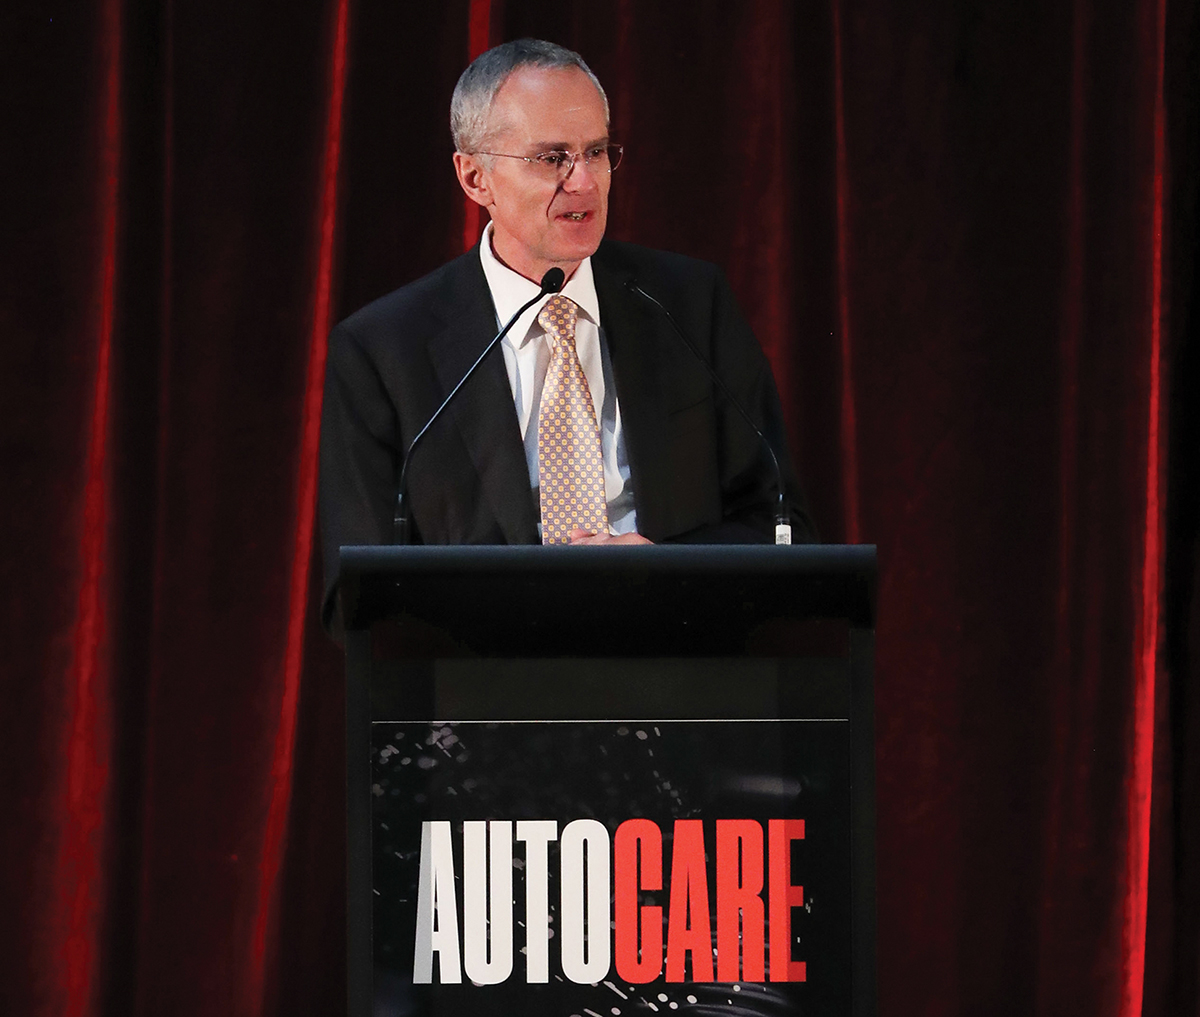 ACCC REITERATES SUPPORT FOR MANDATORY SHARING OF CAR REPAIR INFORMATION